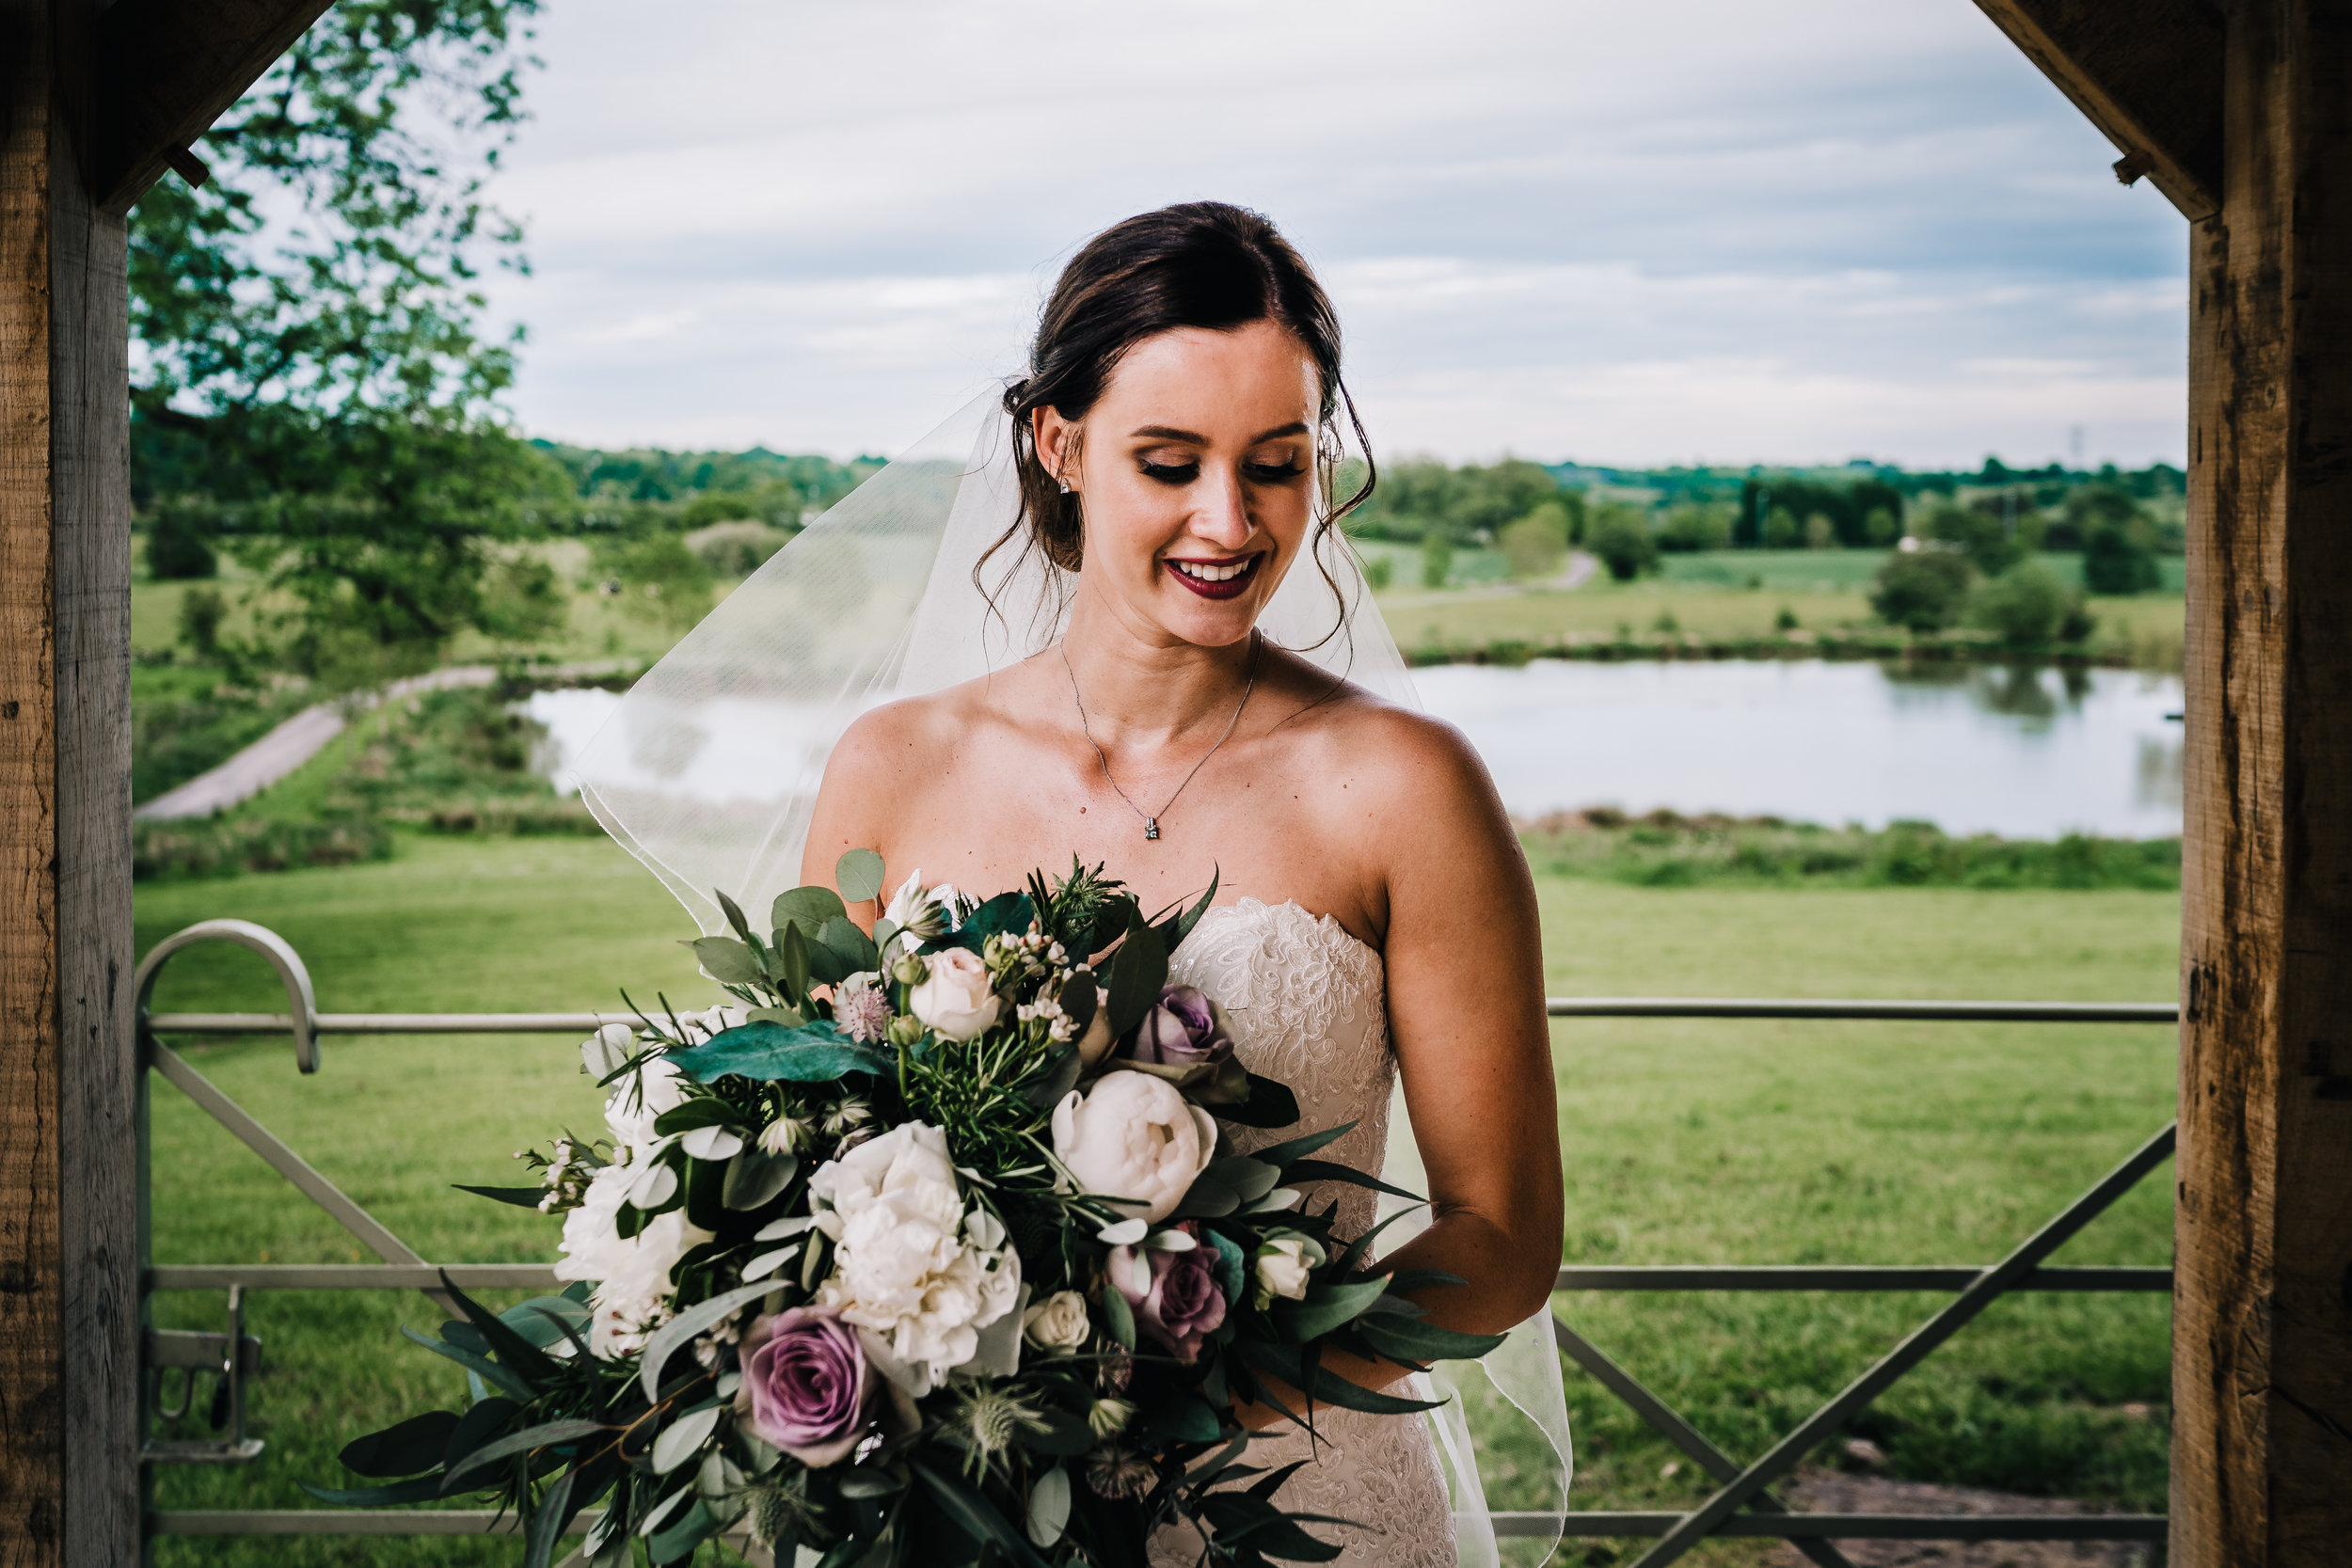 STUNNING BRIDE AT THE ASHES BARNS OUTDOOR WEDDING VENUE